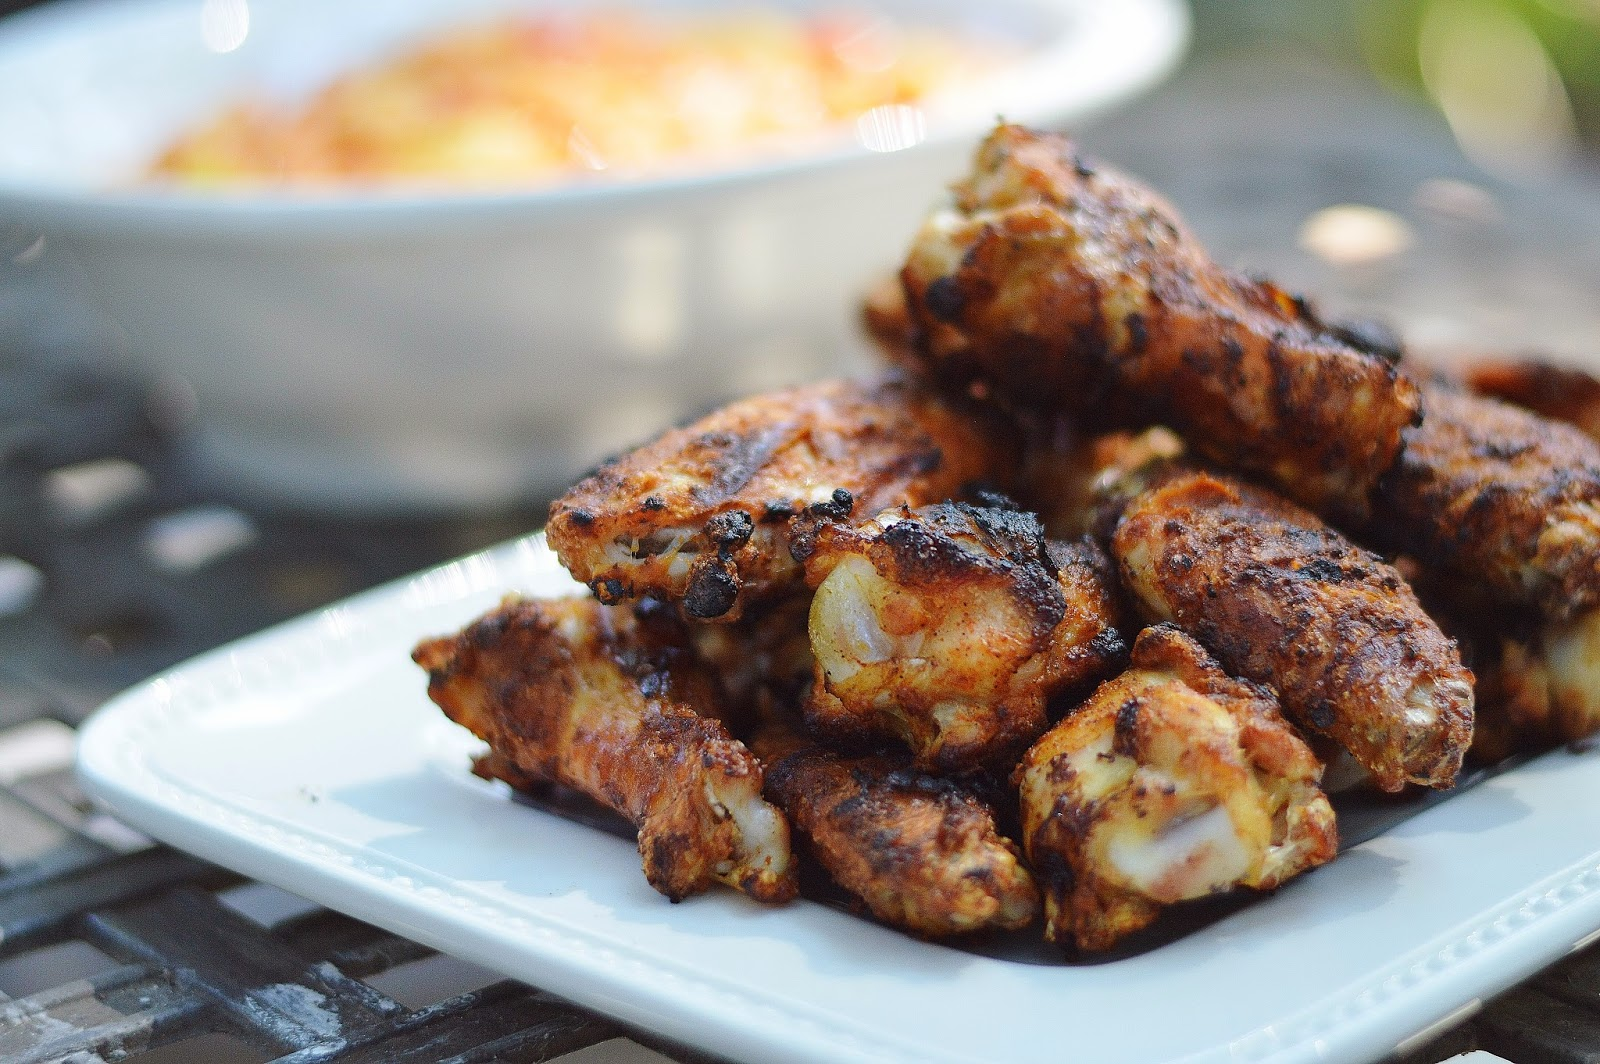 Jun 14, · Blackened chicken is the result of quick cooking over very high heat. Blackened chicken is typically seasoned with Cajun spices to make the outer surface of the chicken a spicy char. It then pairs well with a cooling or refreshing topping, such as citrus or fruit salsa%().